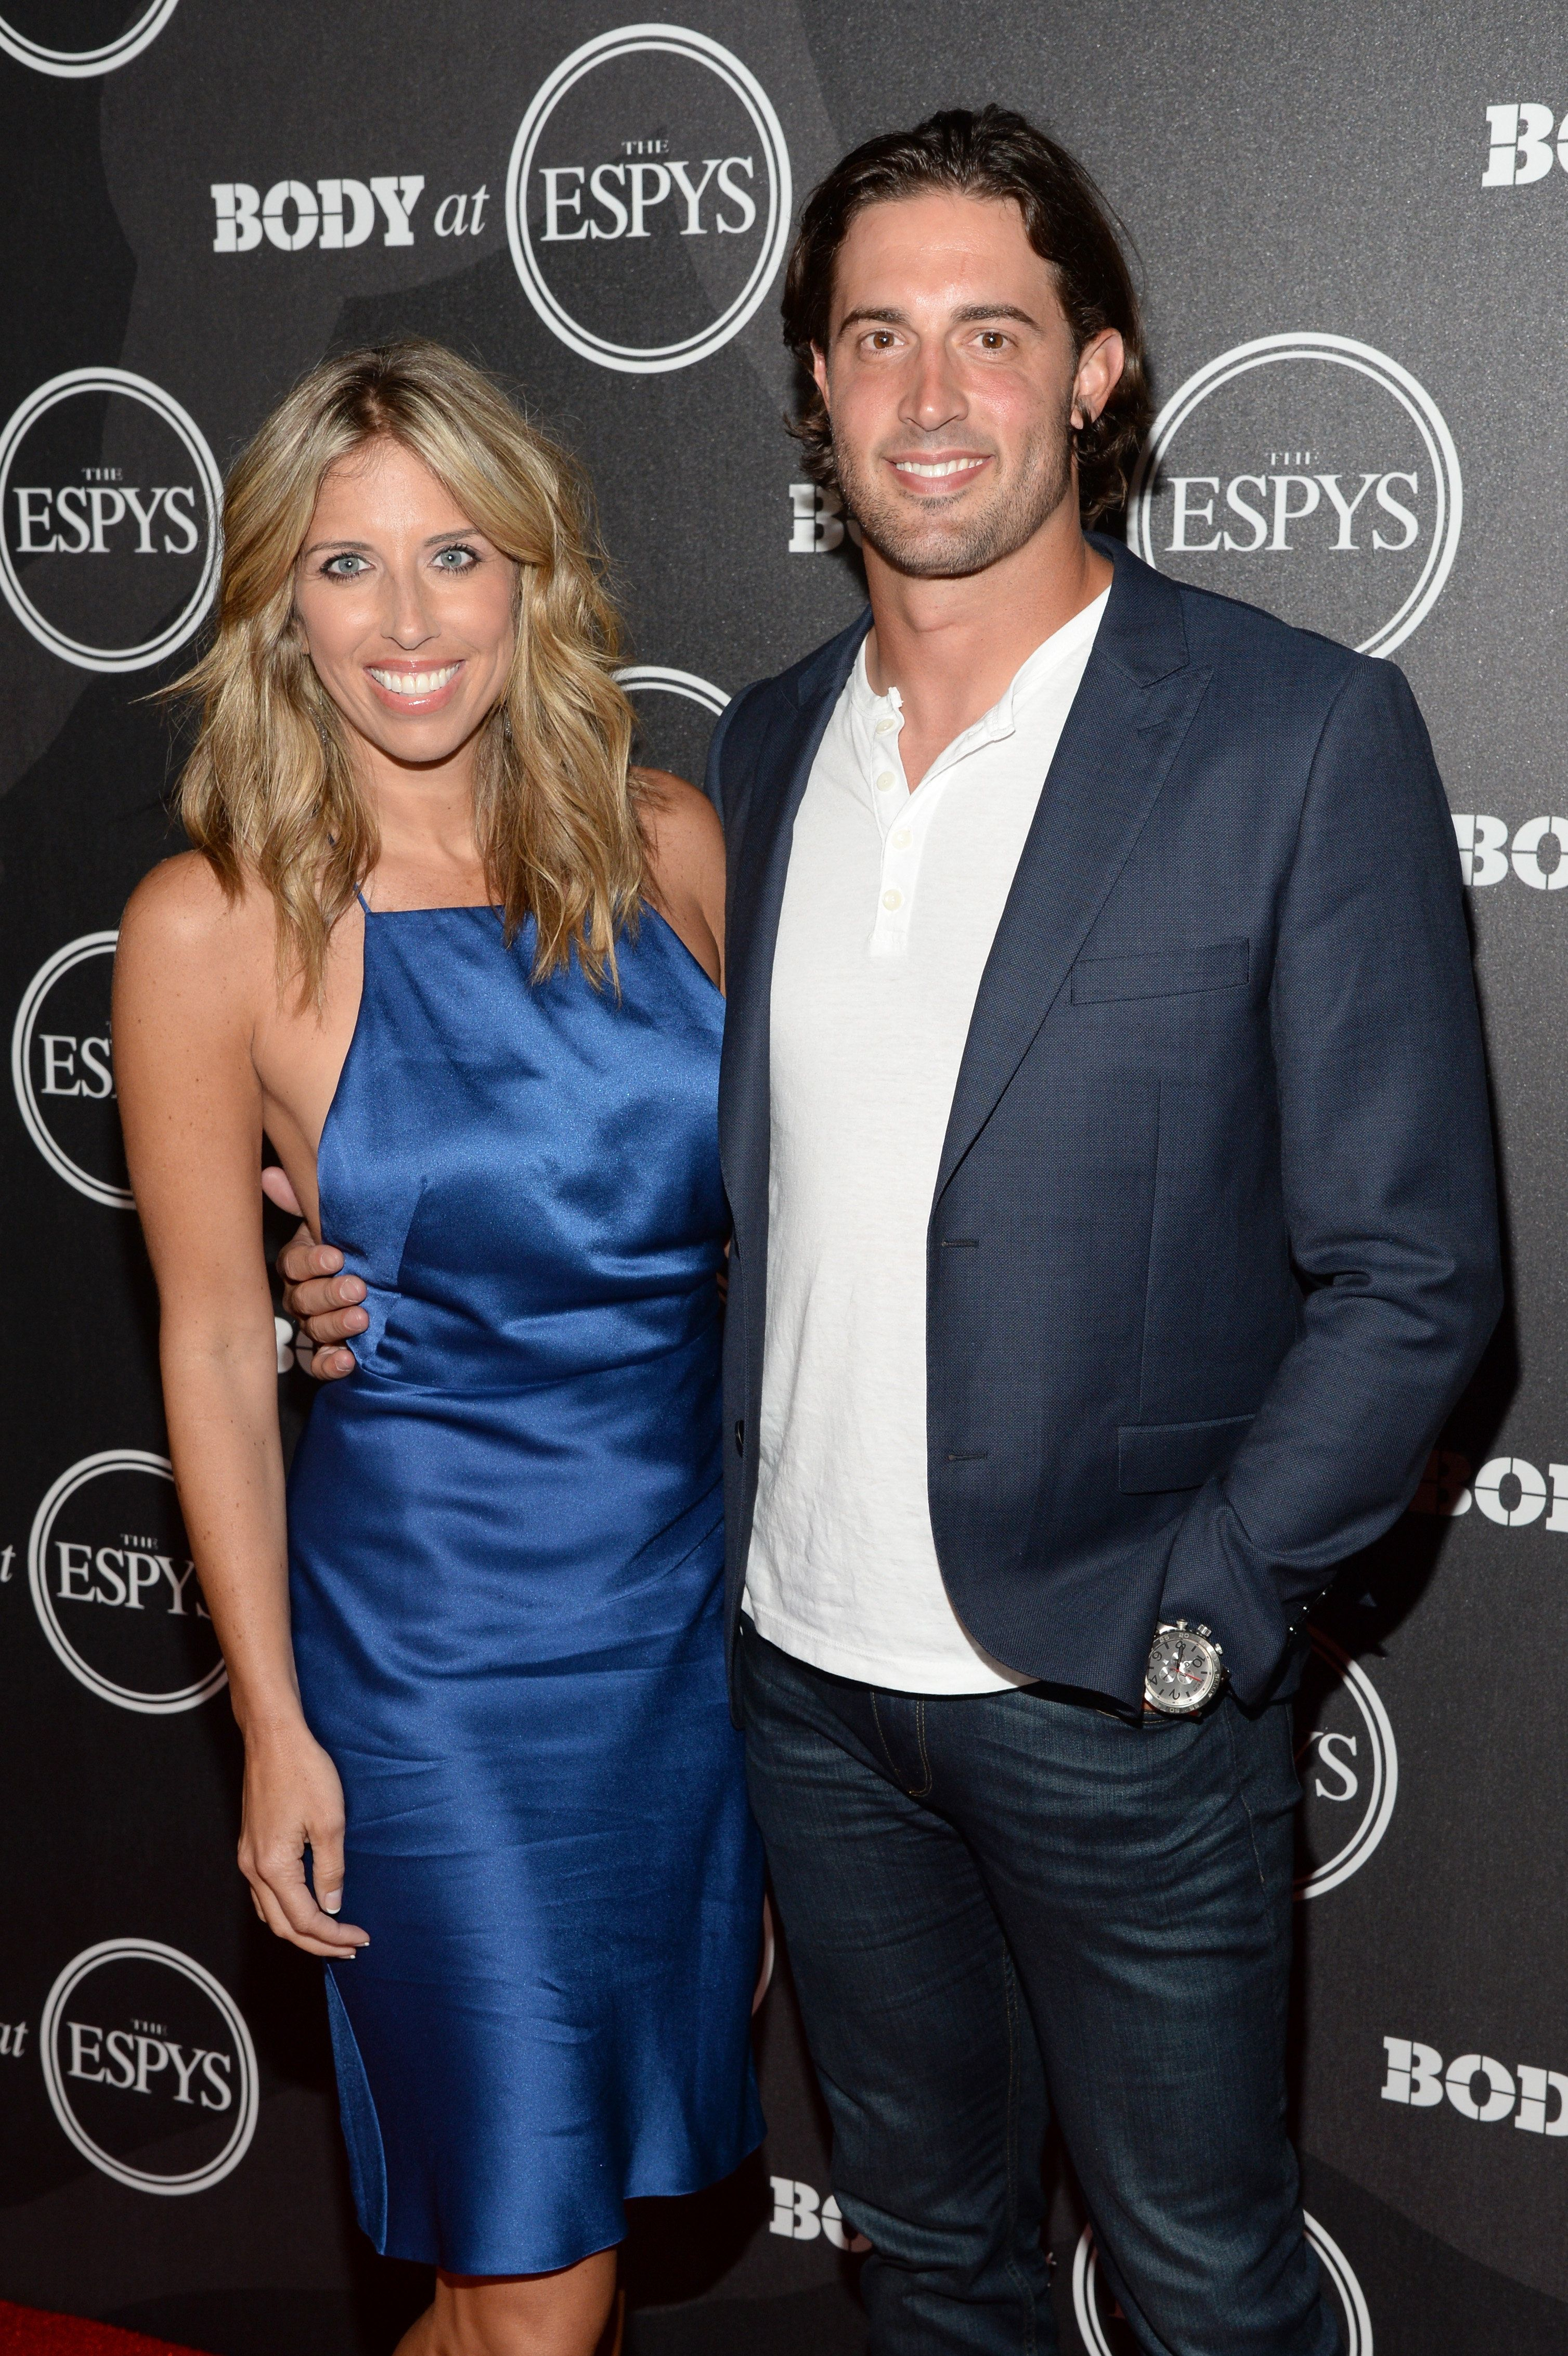 LOS ANGELES, CA - JULY 12:  Sportscaster Sara Walsh (L) and MLB player Matt Buschmann at the BODY at ESPYS Event on July 12th at Avalon Hollywood.  (Photo by Michael Kovac/Getty Images for ESPN)